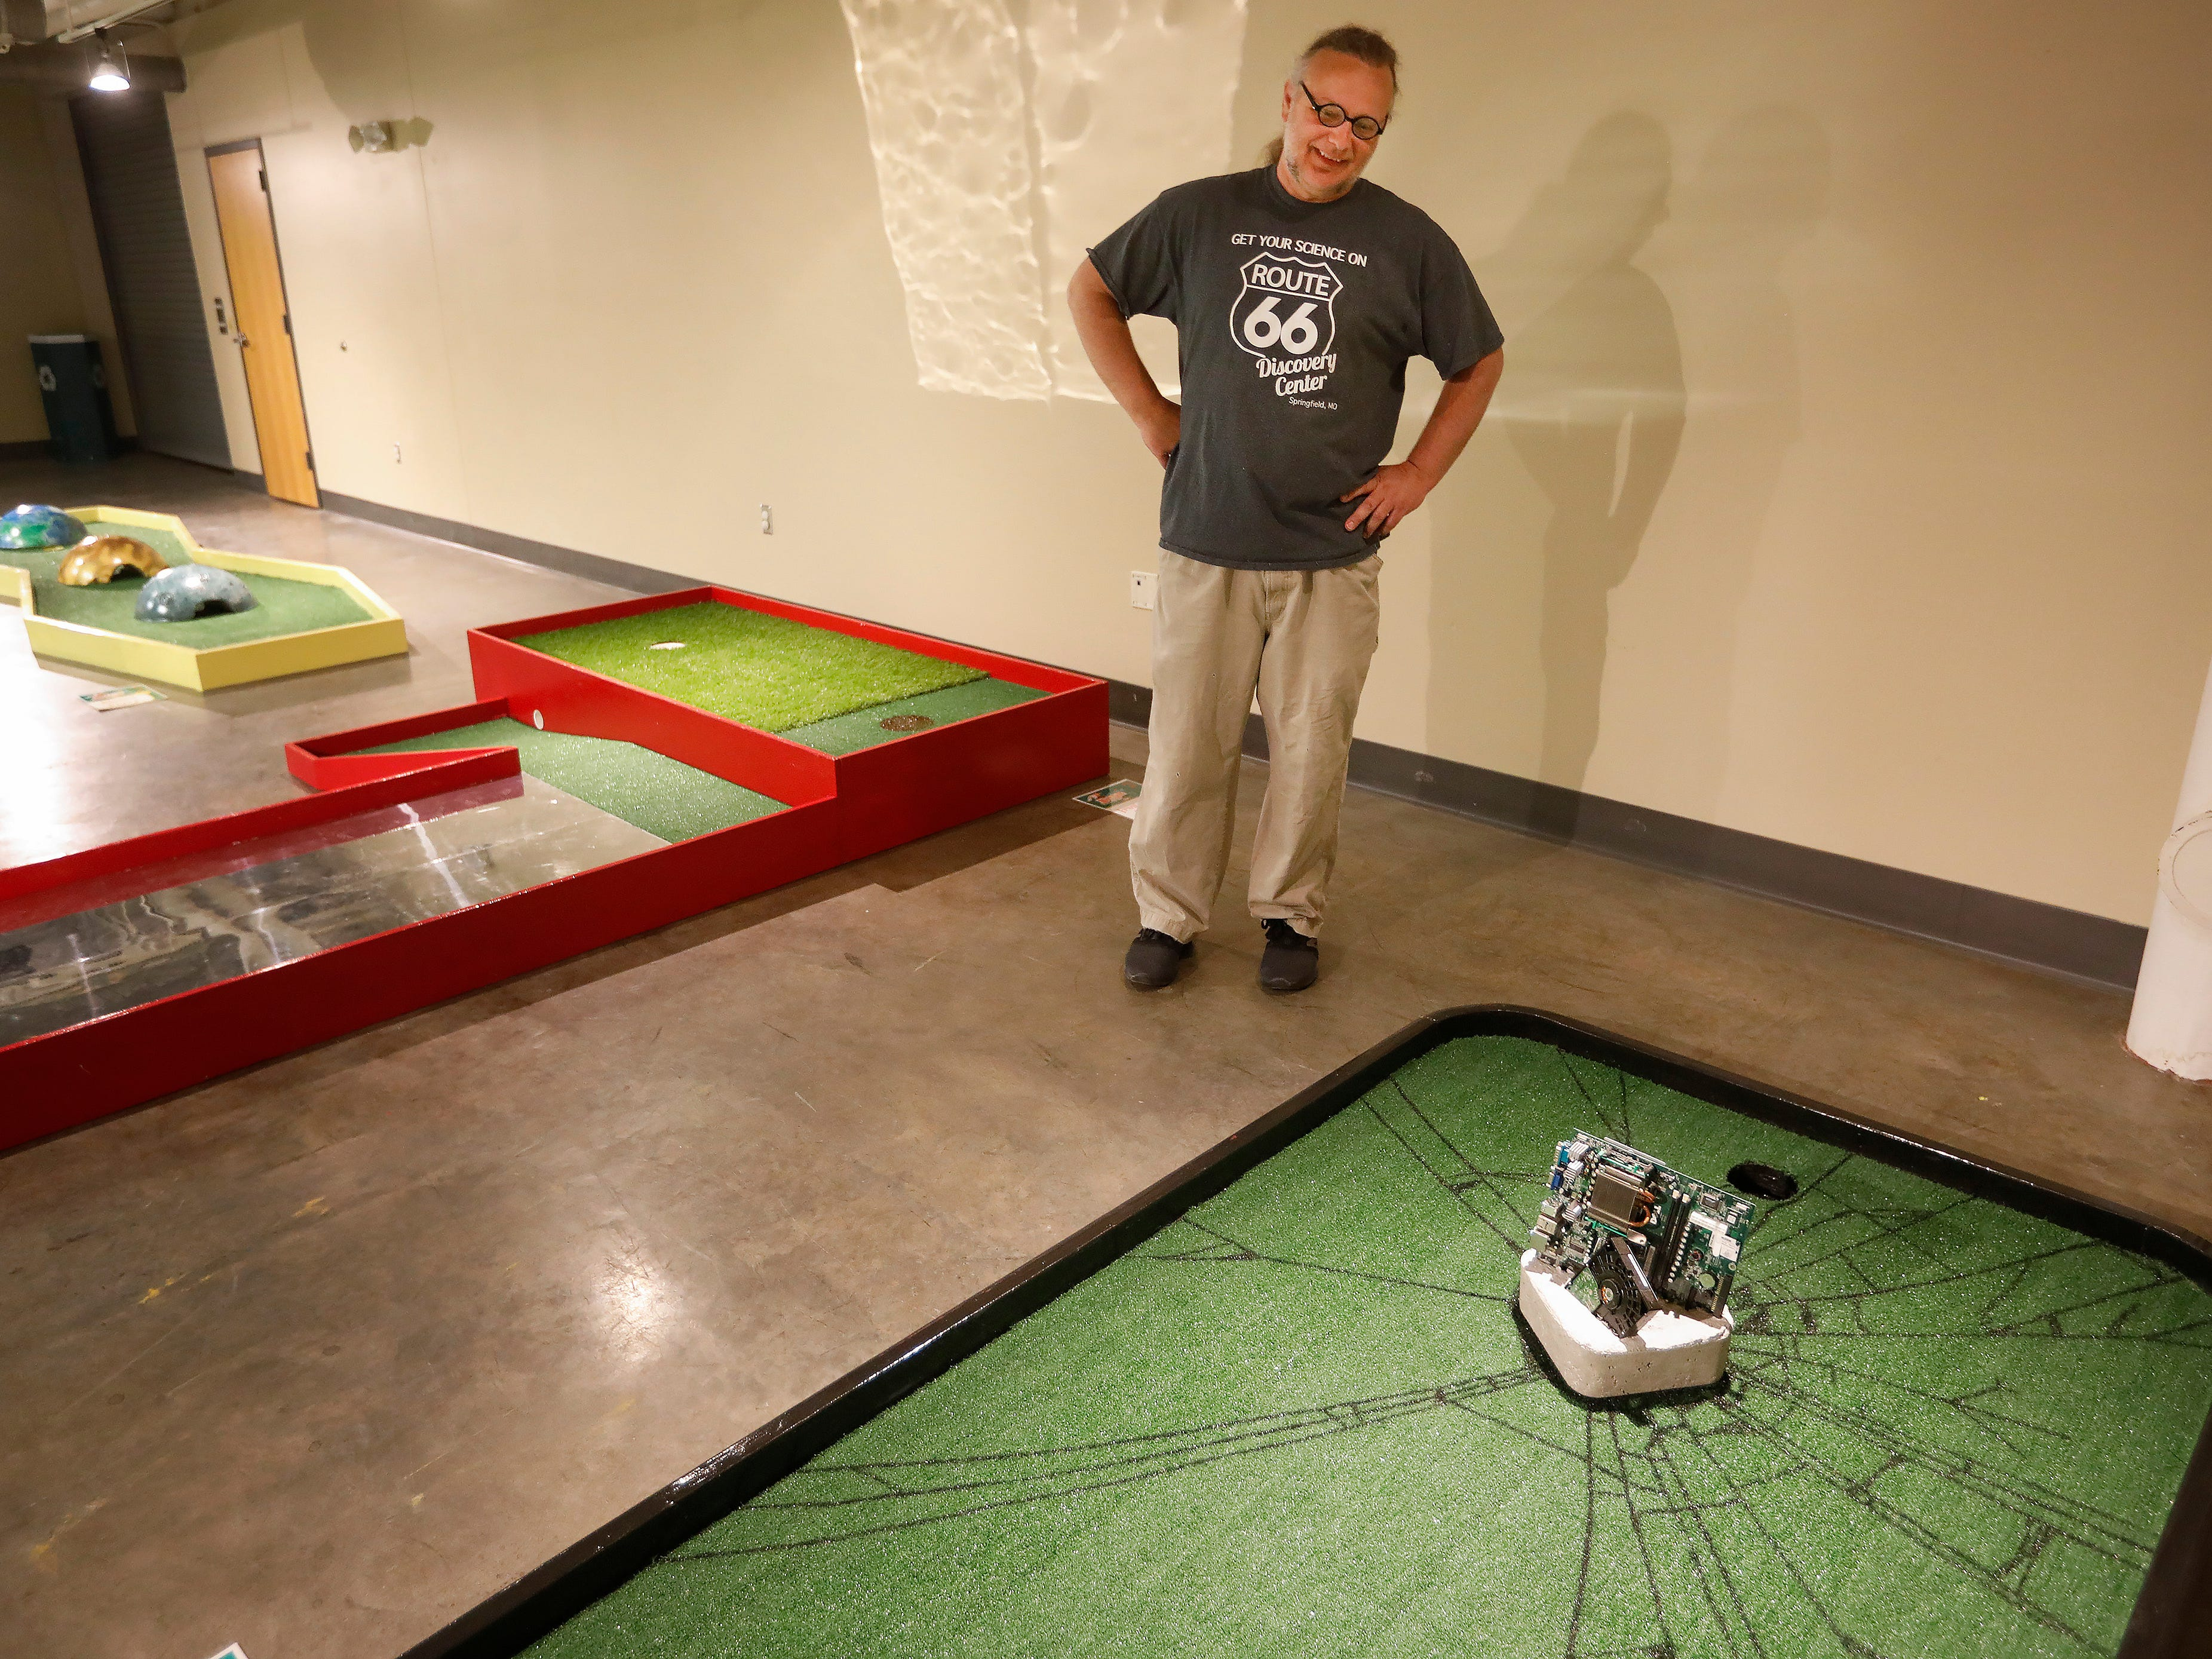 Robert Olson, exhibits director at the Discovery Center, talks about designing the new 9-hole indoor miniature golf course at the science museum. The new exhibit opens to the public on Sunday, March 31, 2019.